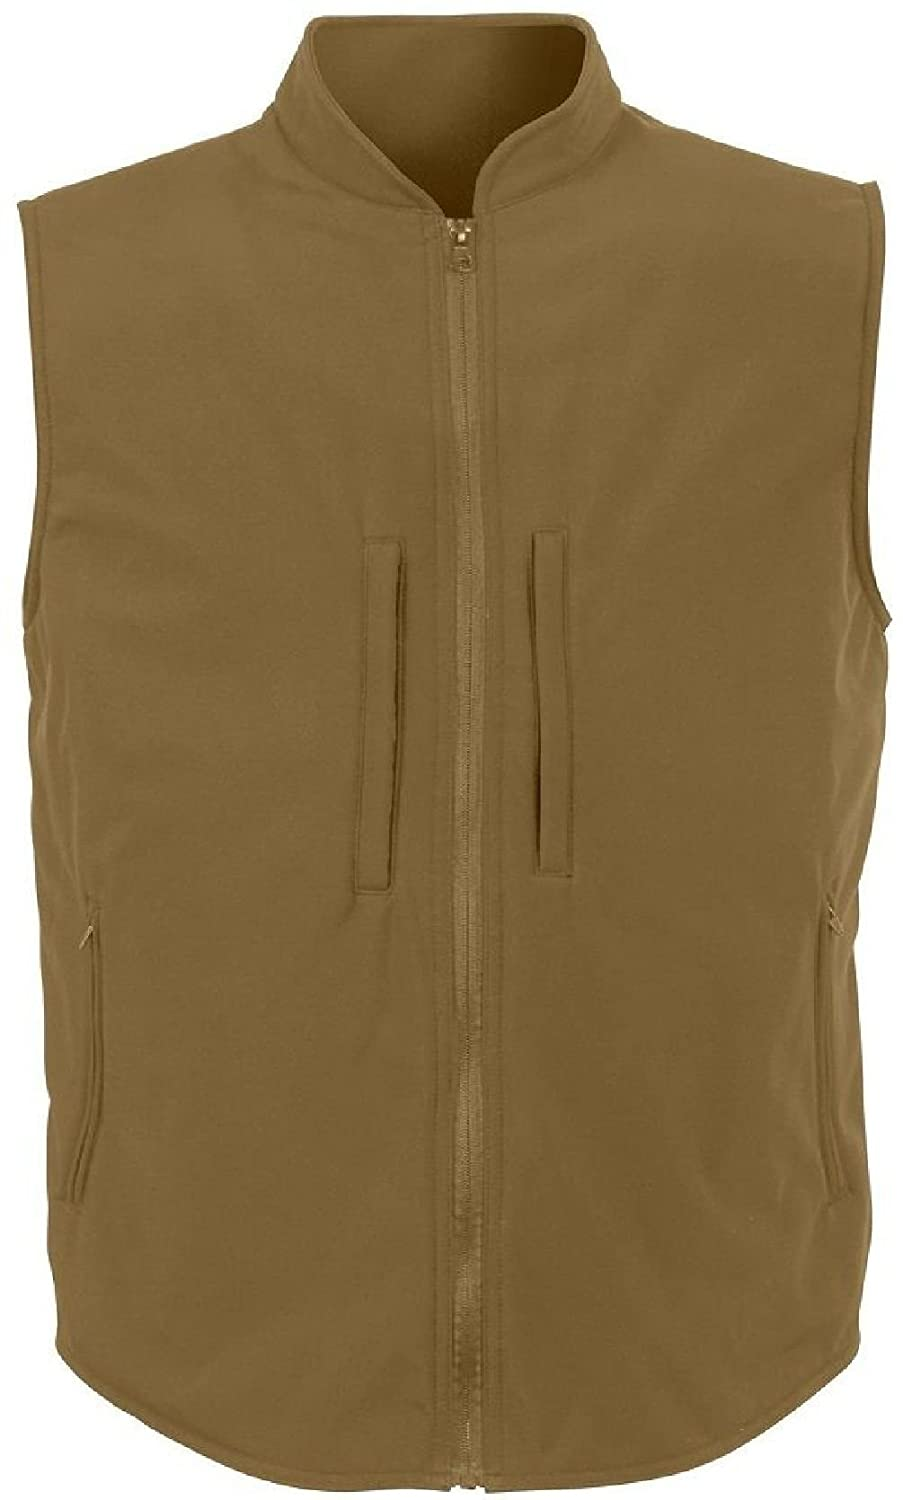 Amazon.com  Concealed Carry Vest Coyote Brown Soft Shell Tactical Vest   Clothing 7093e511aa5